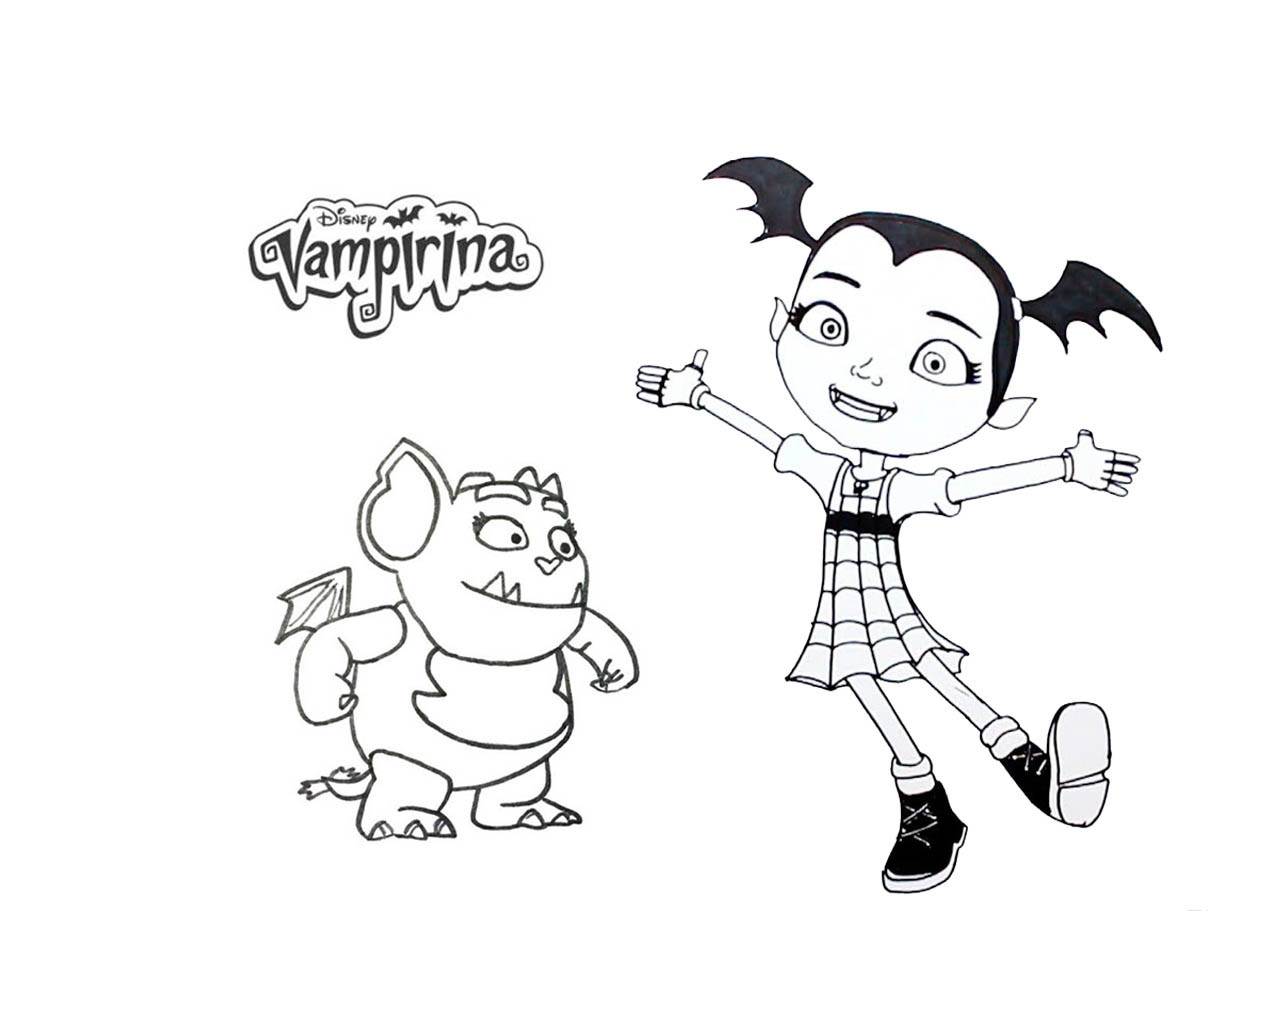 Vampirina Coloring Pages  Vampirina Coloring Book Free Printable Coloring Pages